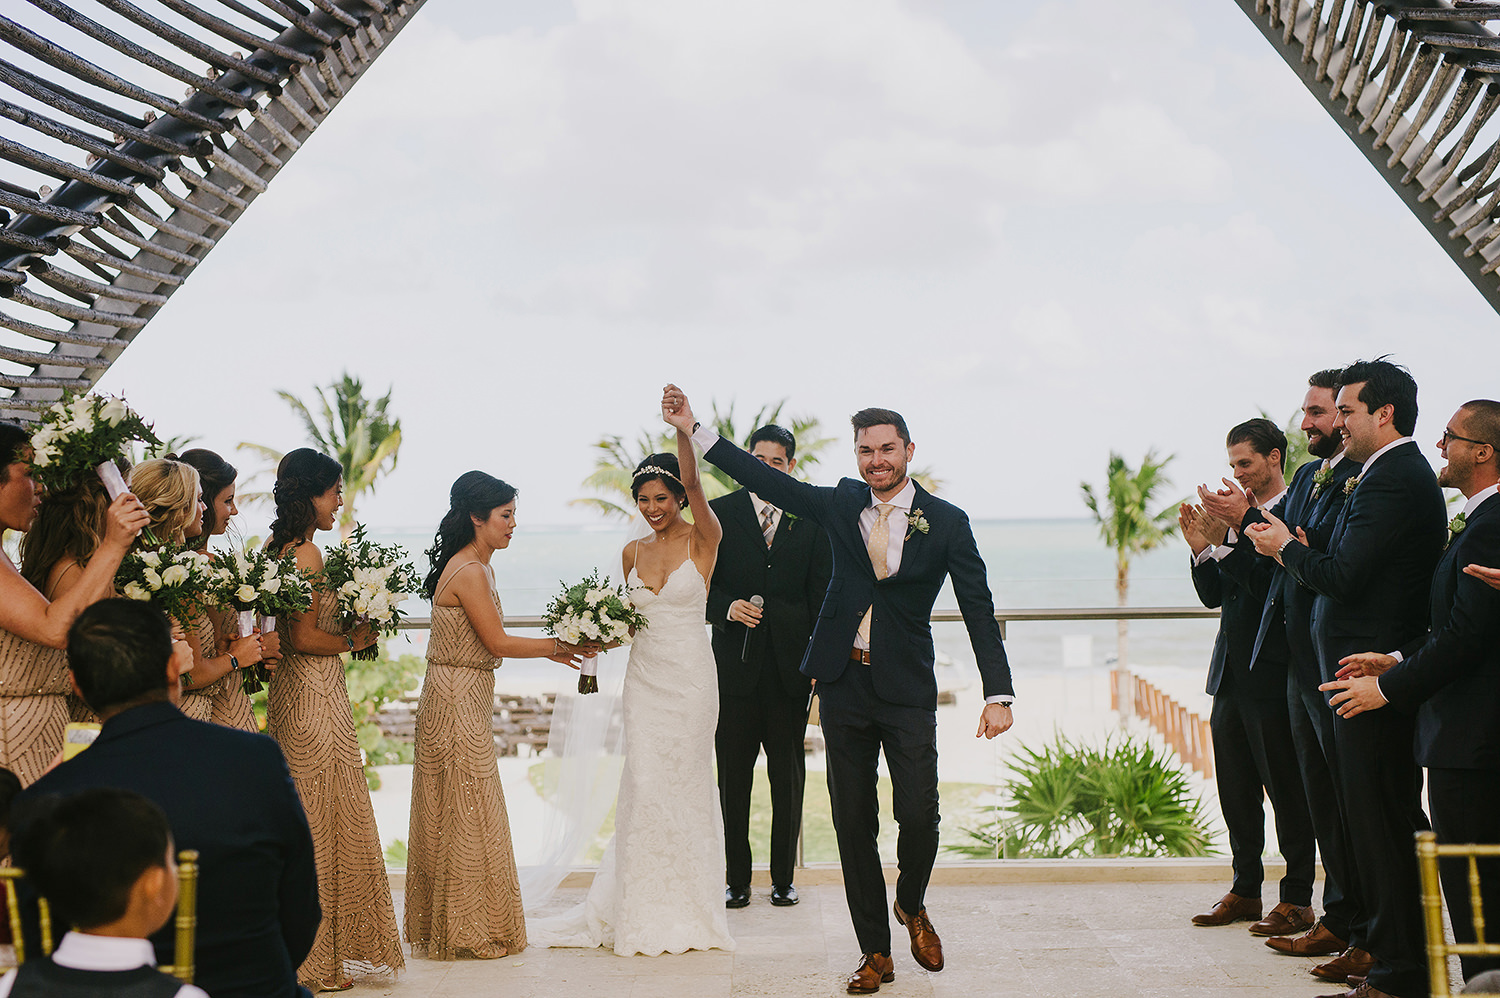 CherylReed_Wedding_Kape_Photography_WeddingPhotography_Mexico_Boda_Fotografia_Royalton_Hideway_Cancun_RivieraMaya_PlayadelCarmen_Beach_318FB_BLOG.jpg